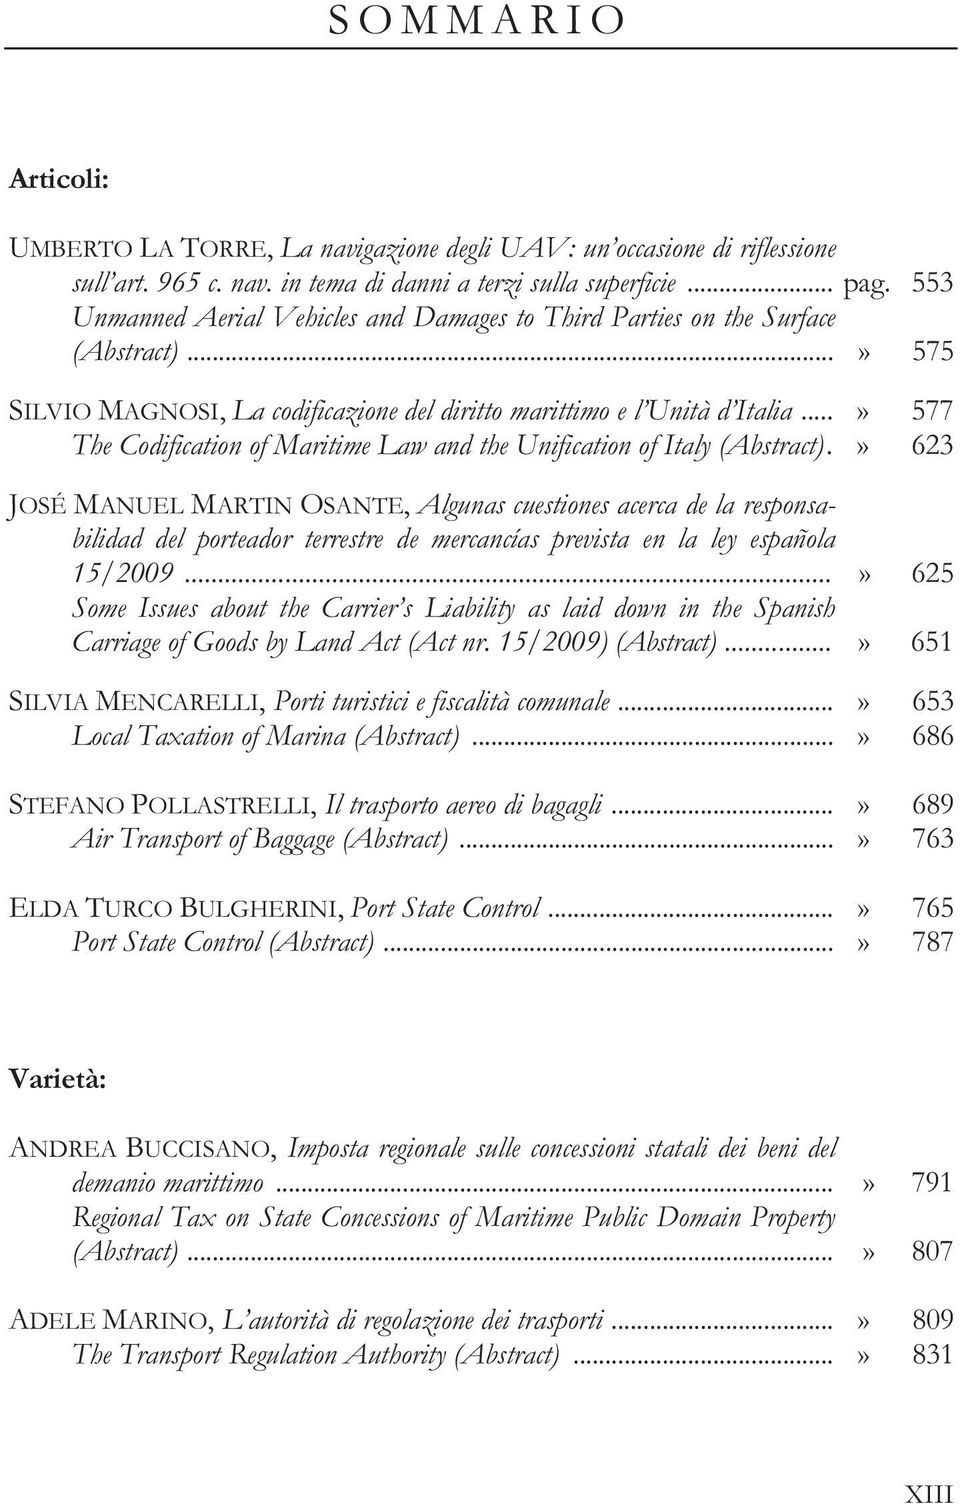 ..» 577 The Codification of Maritime Law and the Unification of Italy (Abstract).